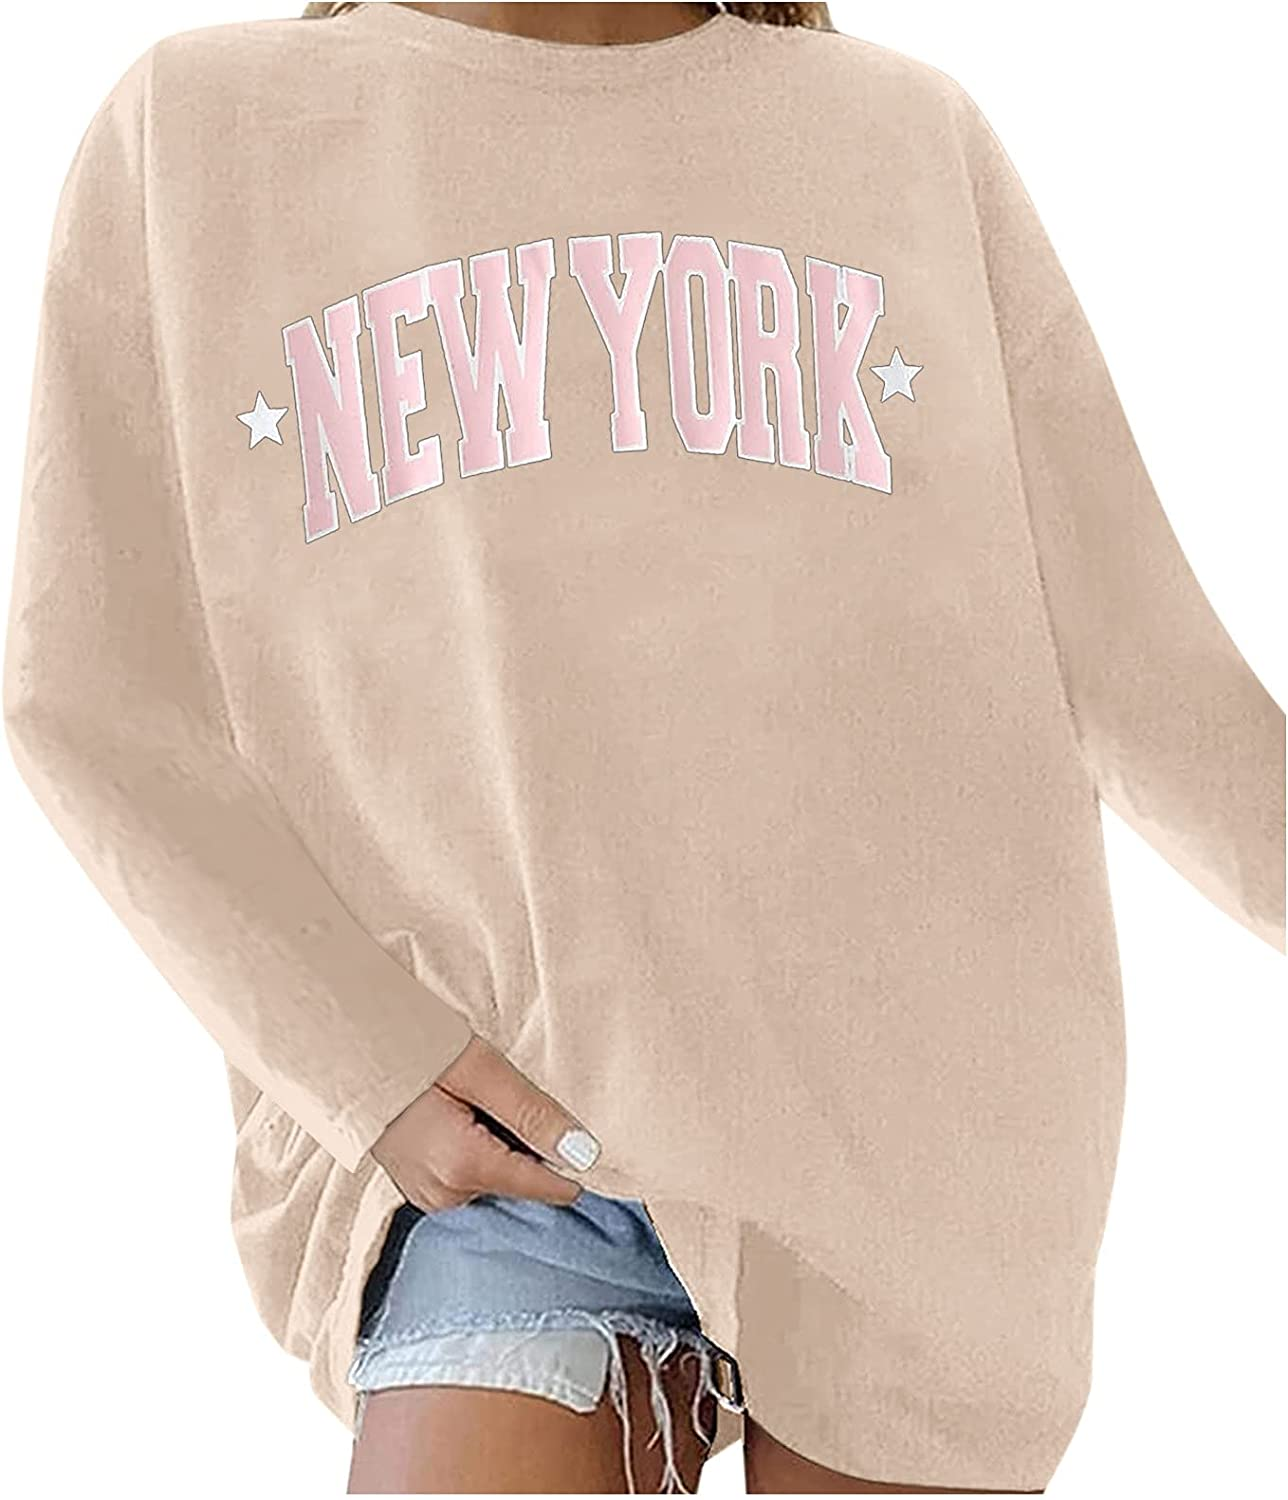 ONHUON Cute Tops for Women,Womens Tops Casual Lightweight V Neck Batwing Sleeve Top Loose Pullover Sweater